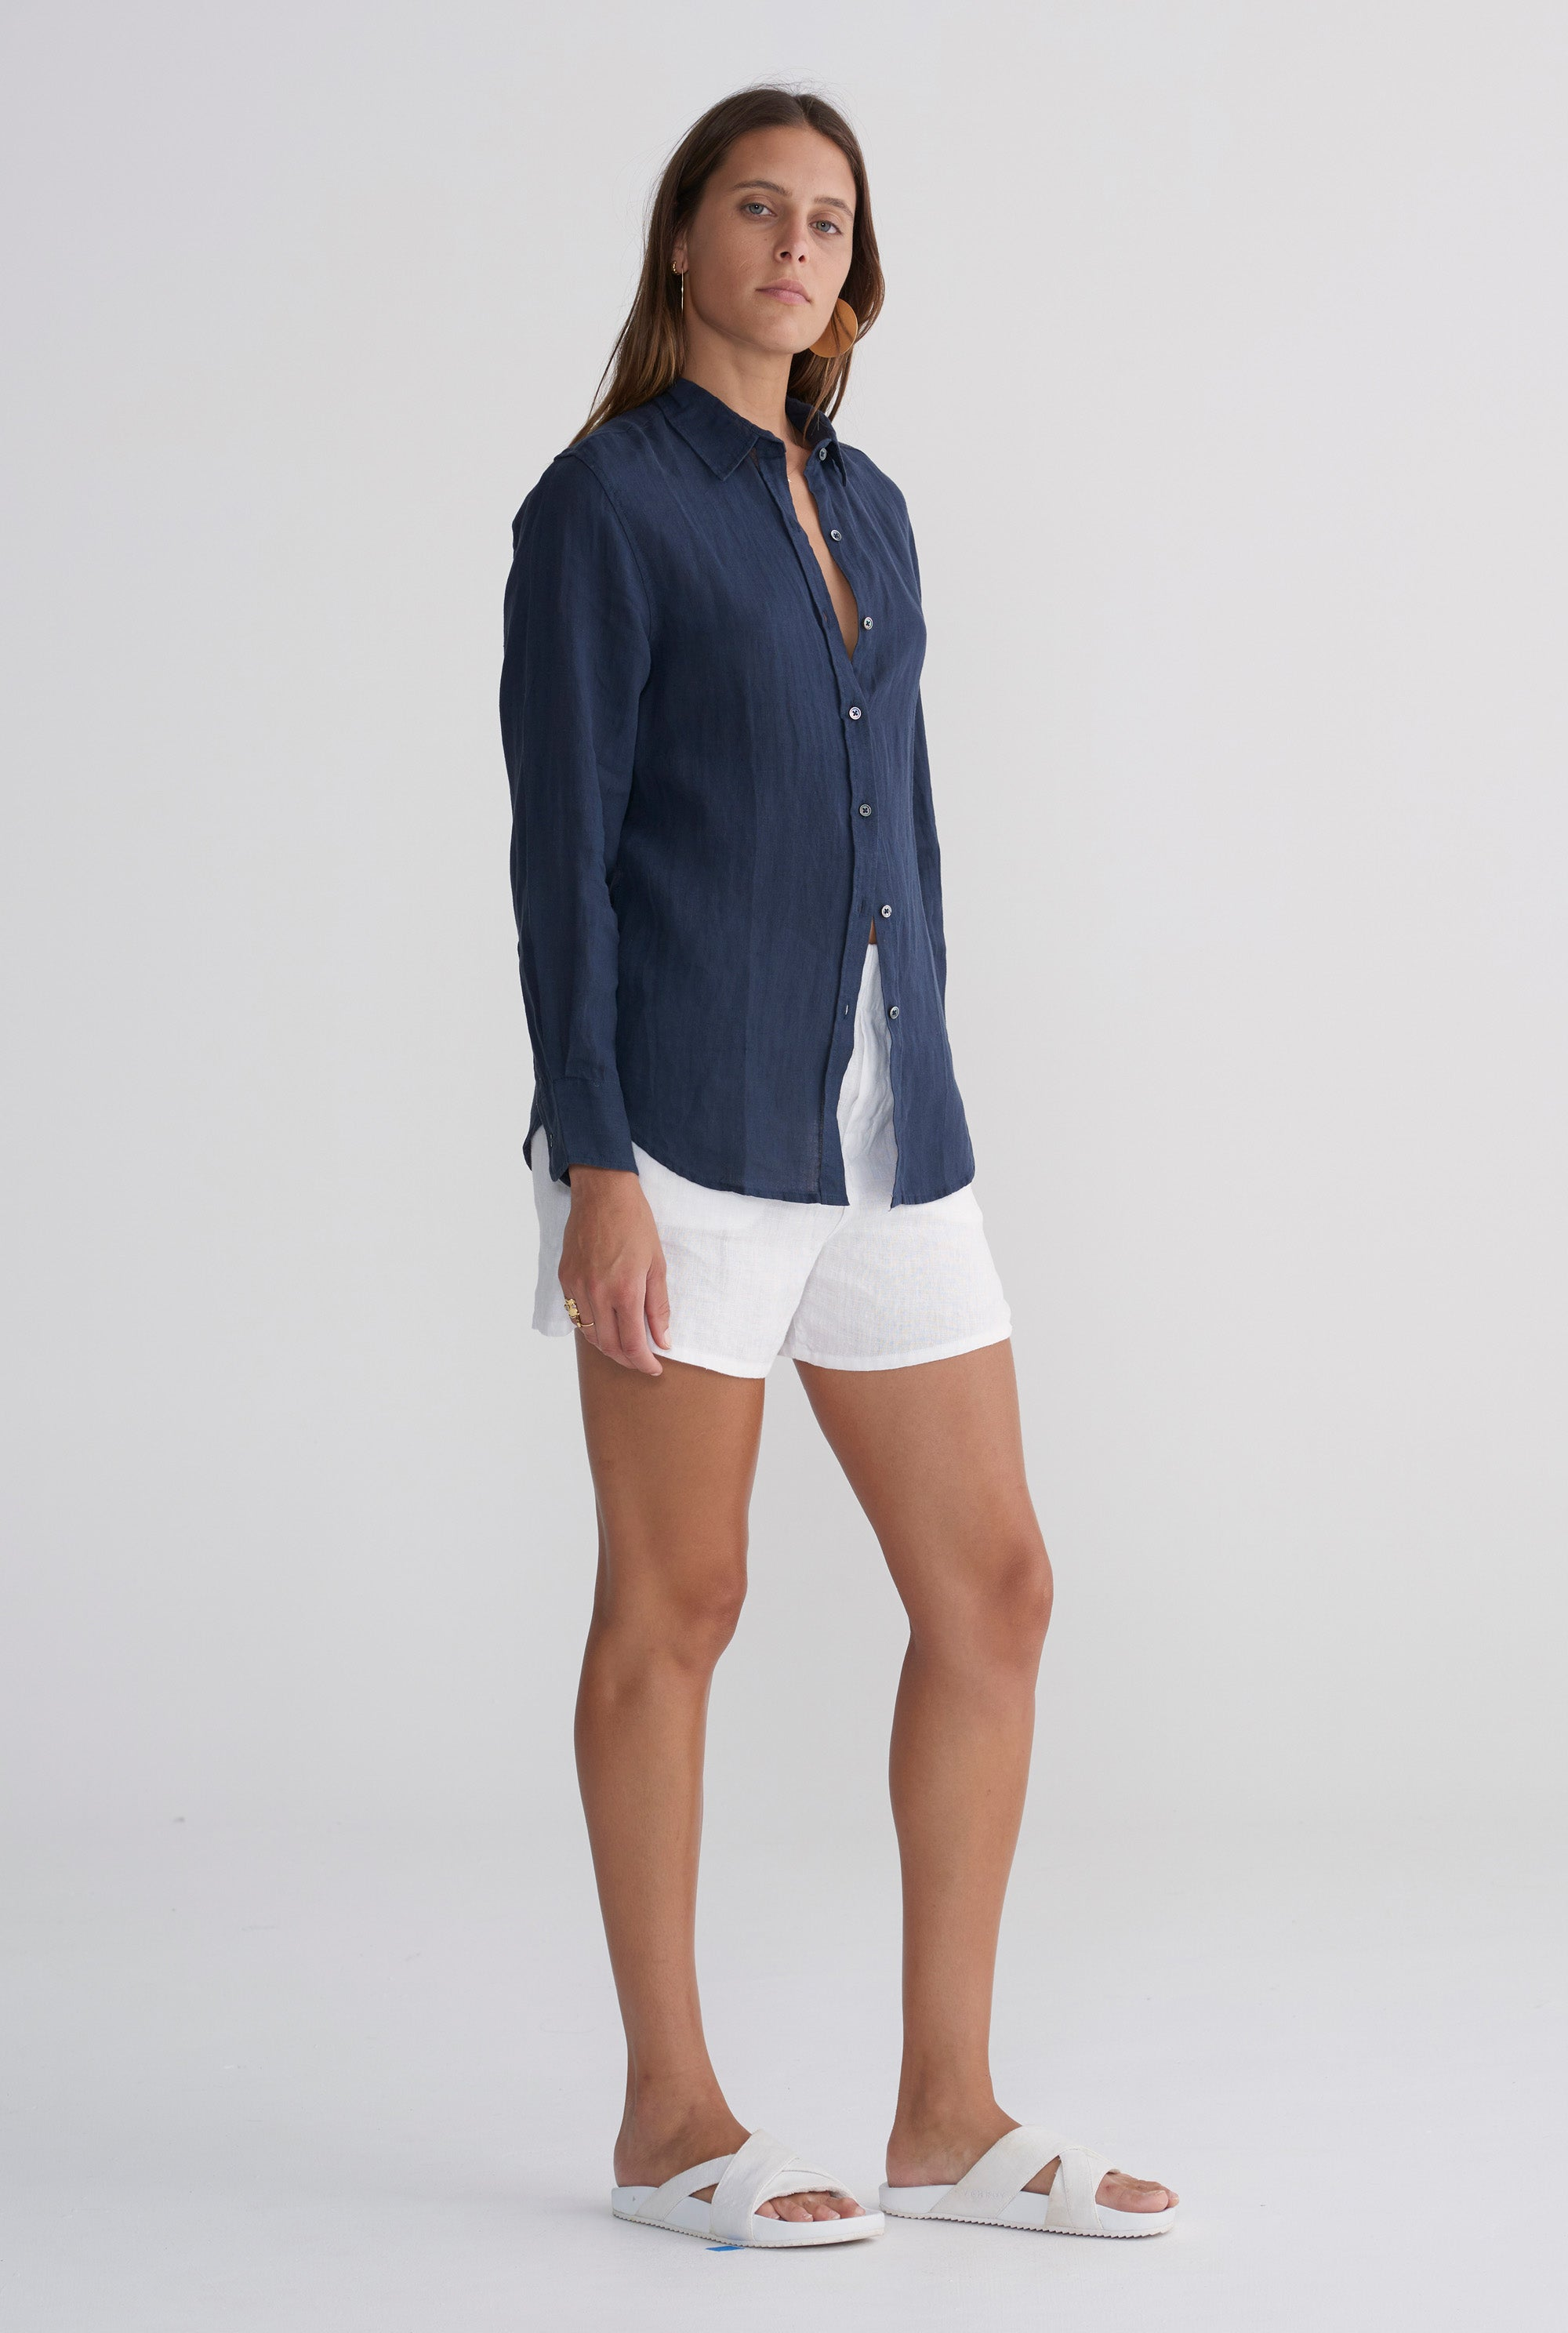 WOMENS SLIM SHIRT - NAVY